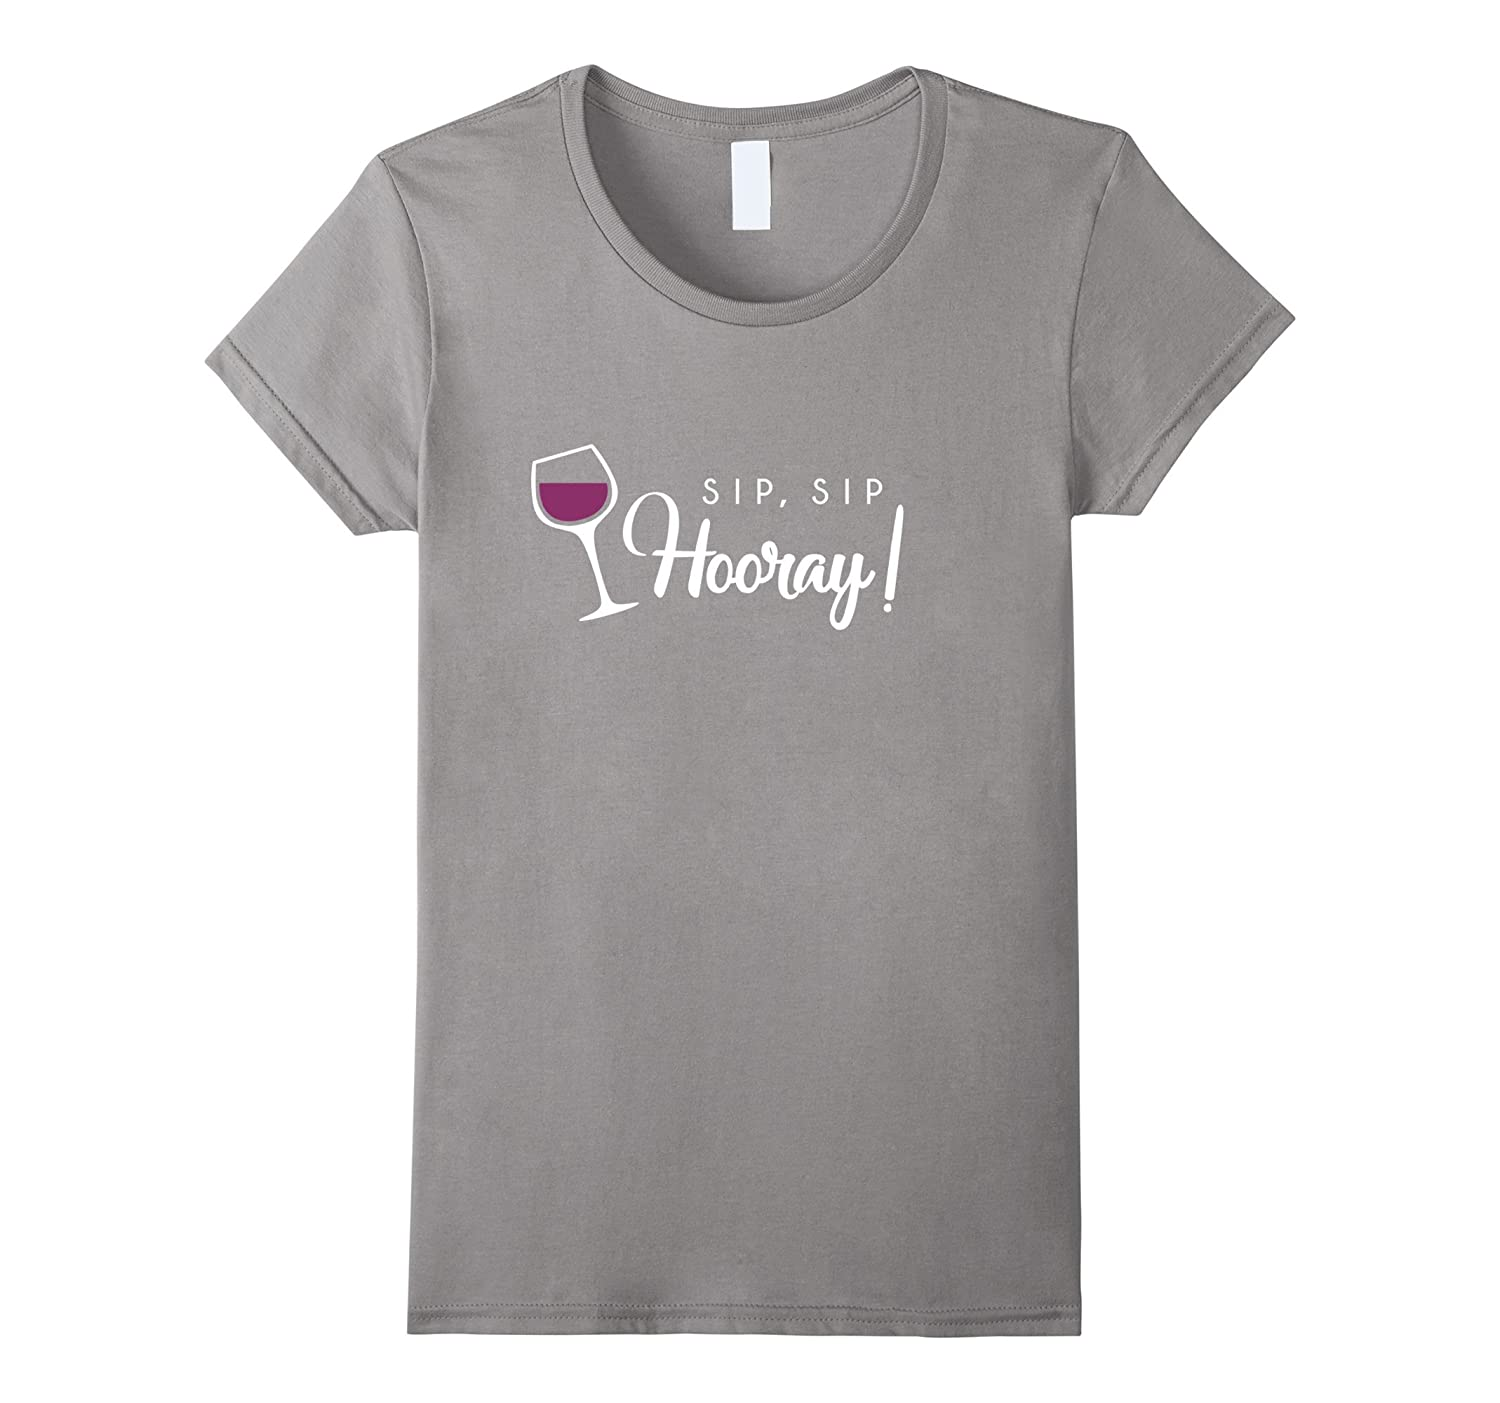 Sip Sip Hooray Shirt ,Funny Cute Wine Glass Lover Gift